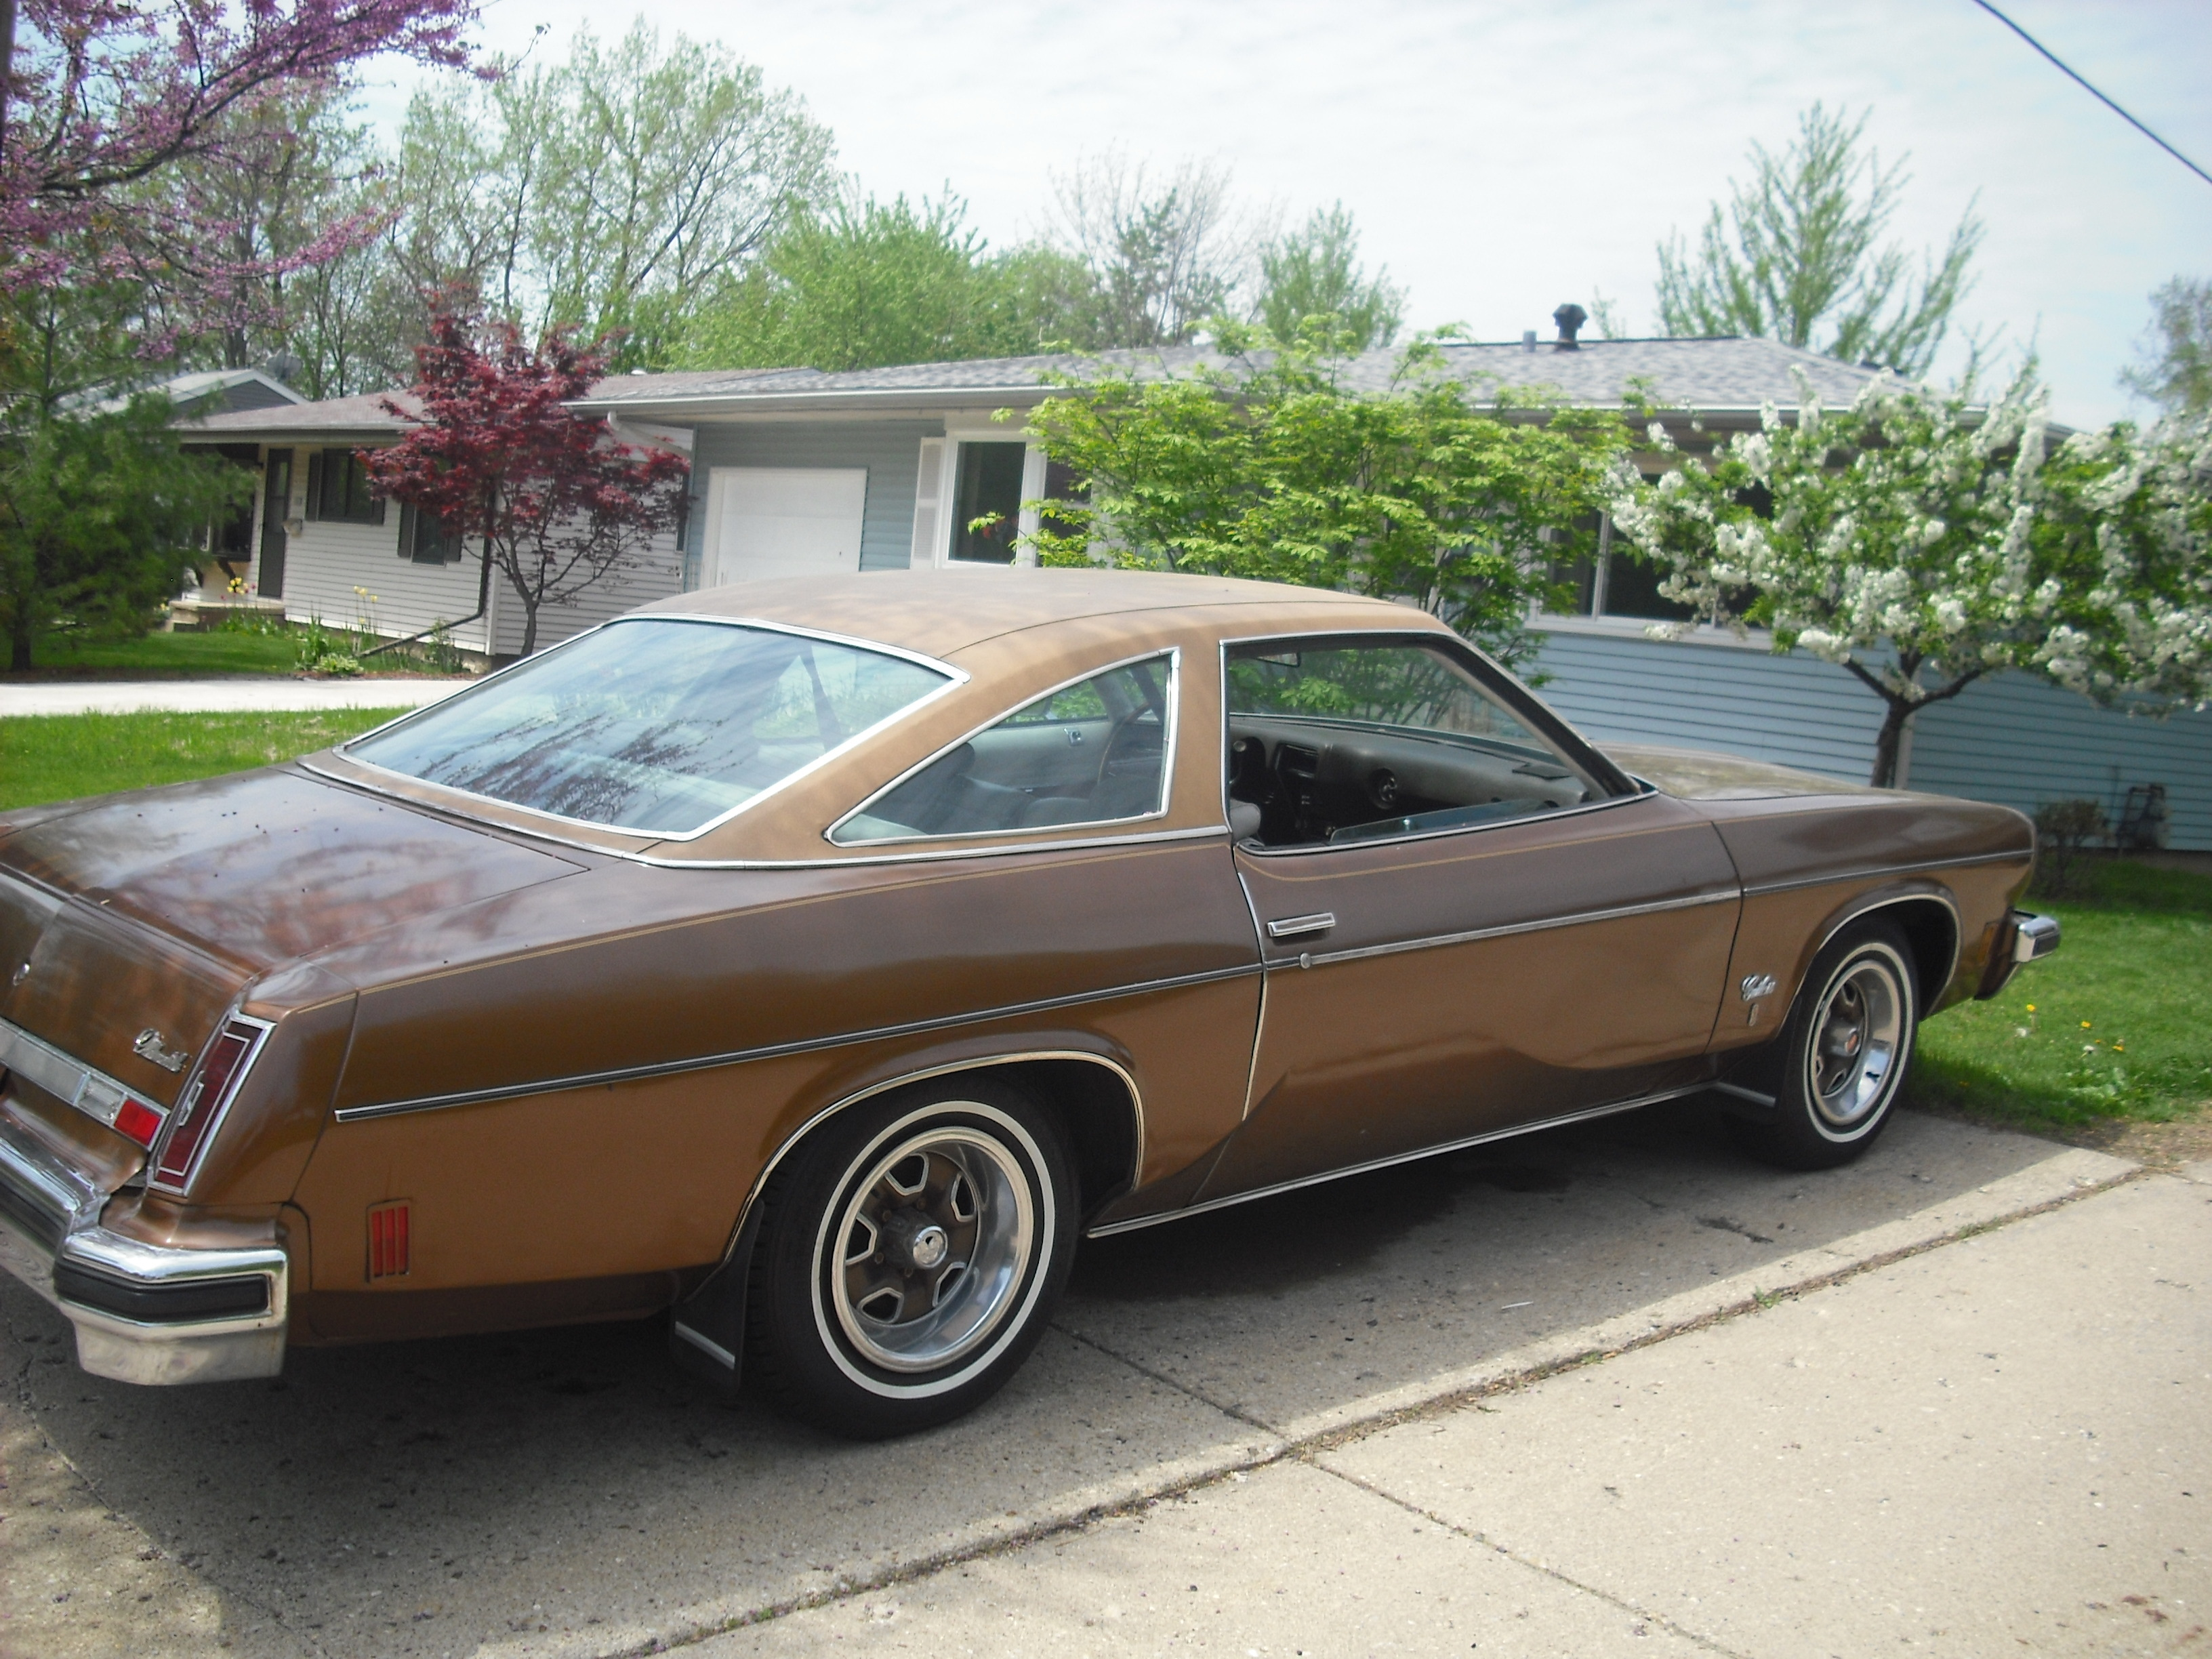 Pin 1974 oldsmobile cutlass on pinterest for 1974 oldsmobile cutlass salon for sale